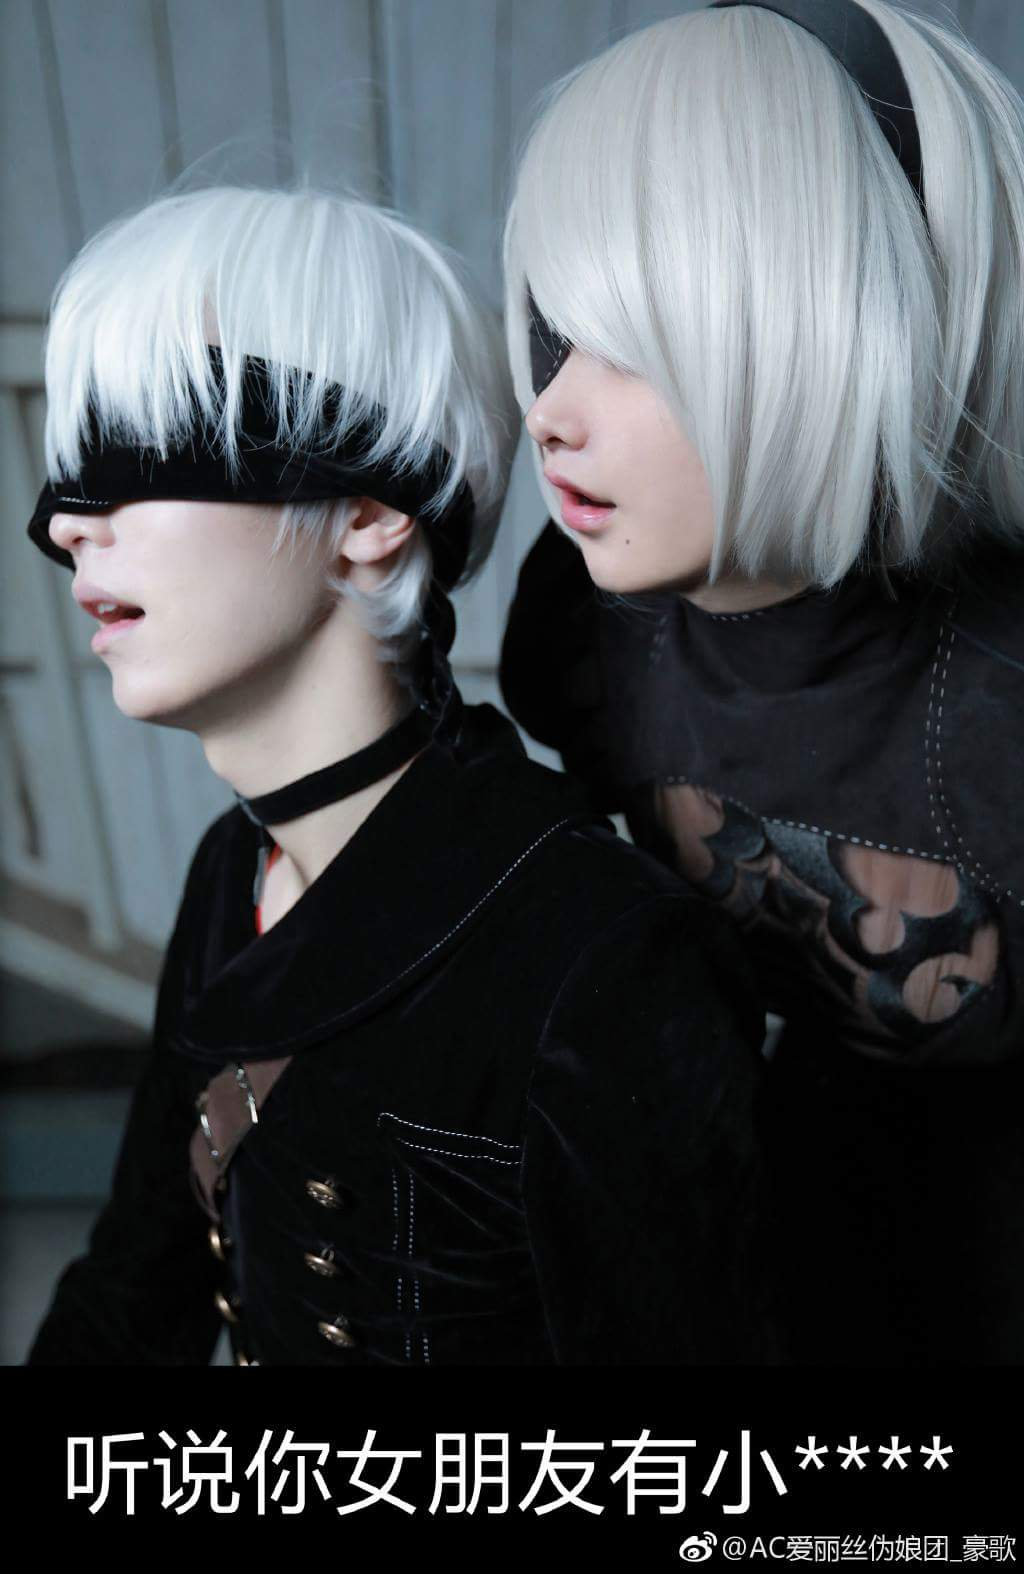 Best cosplay of 2b nier of history - 4 4